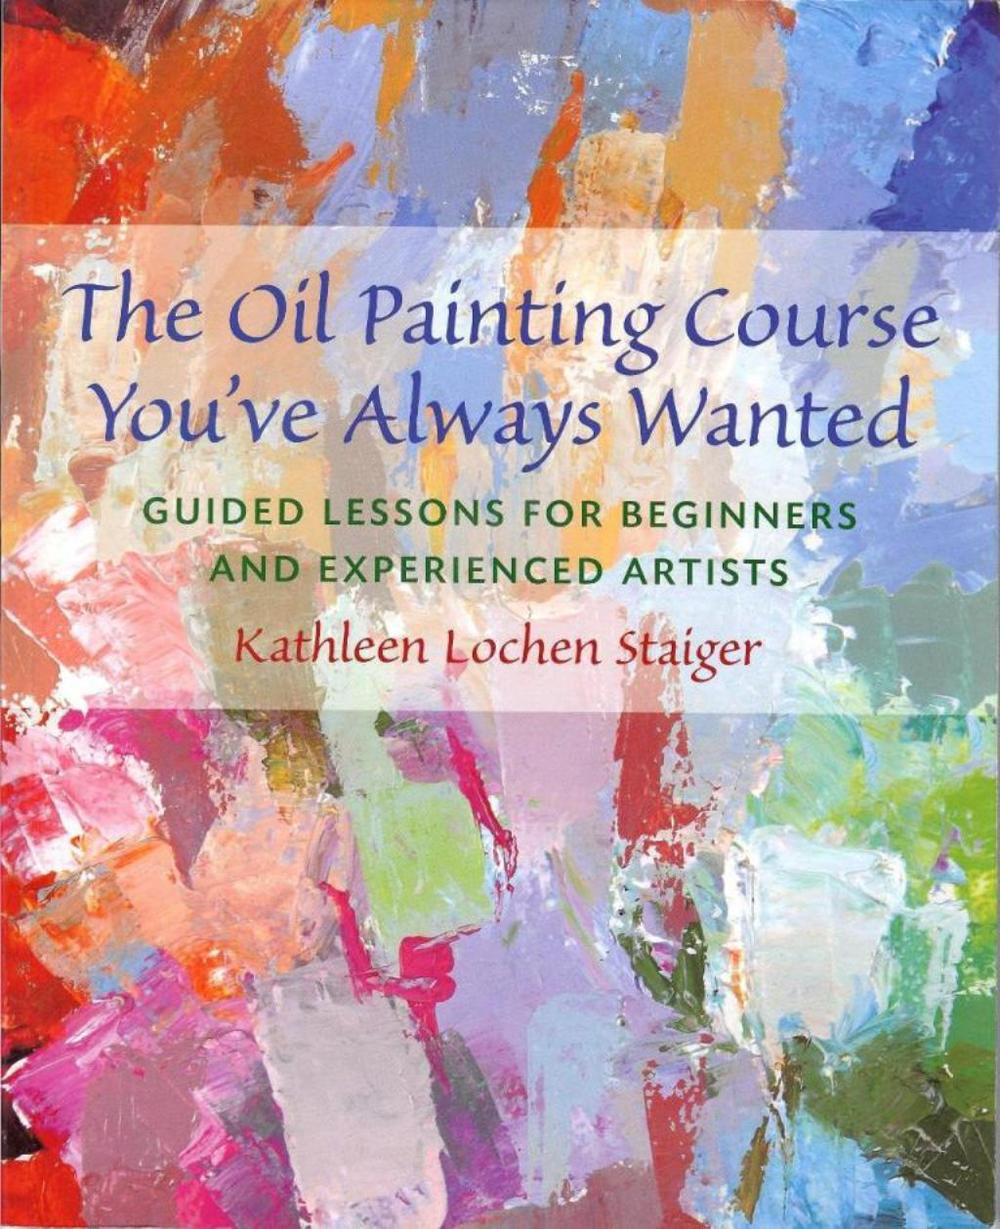 The Oil Painting Course You've Always Wanted, Watson-Guptill Publisher, 2006